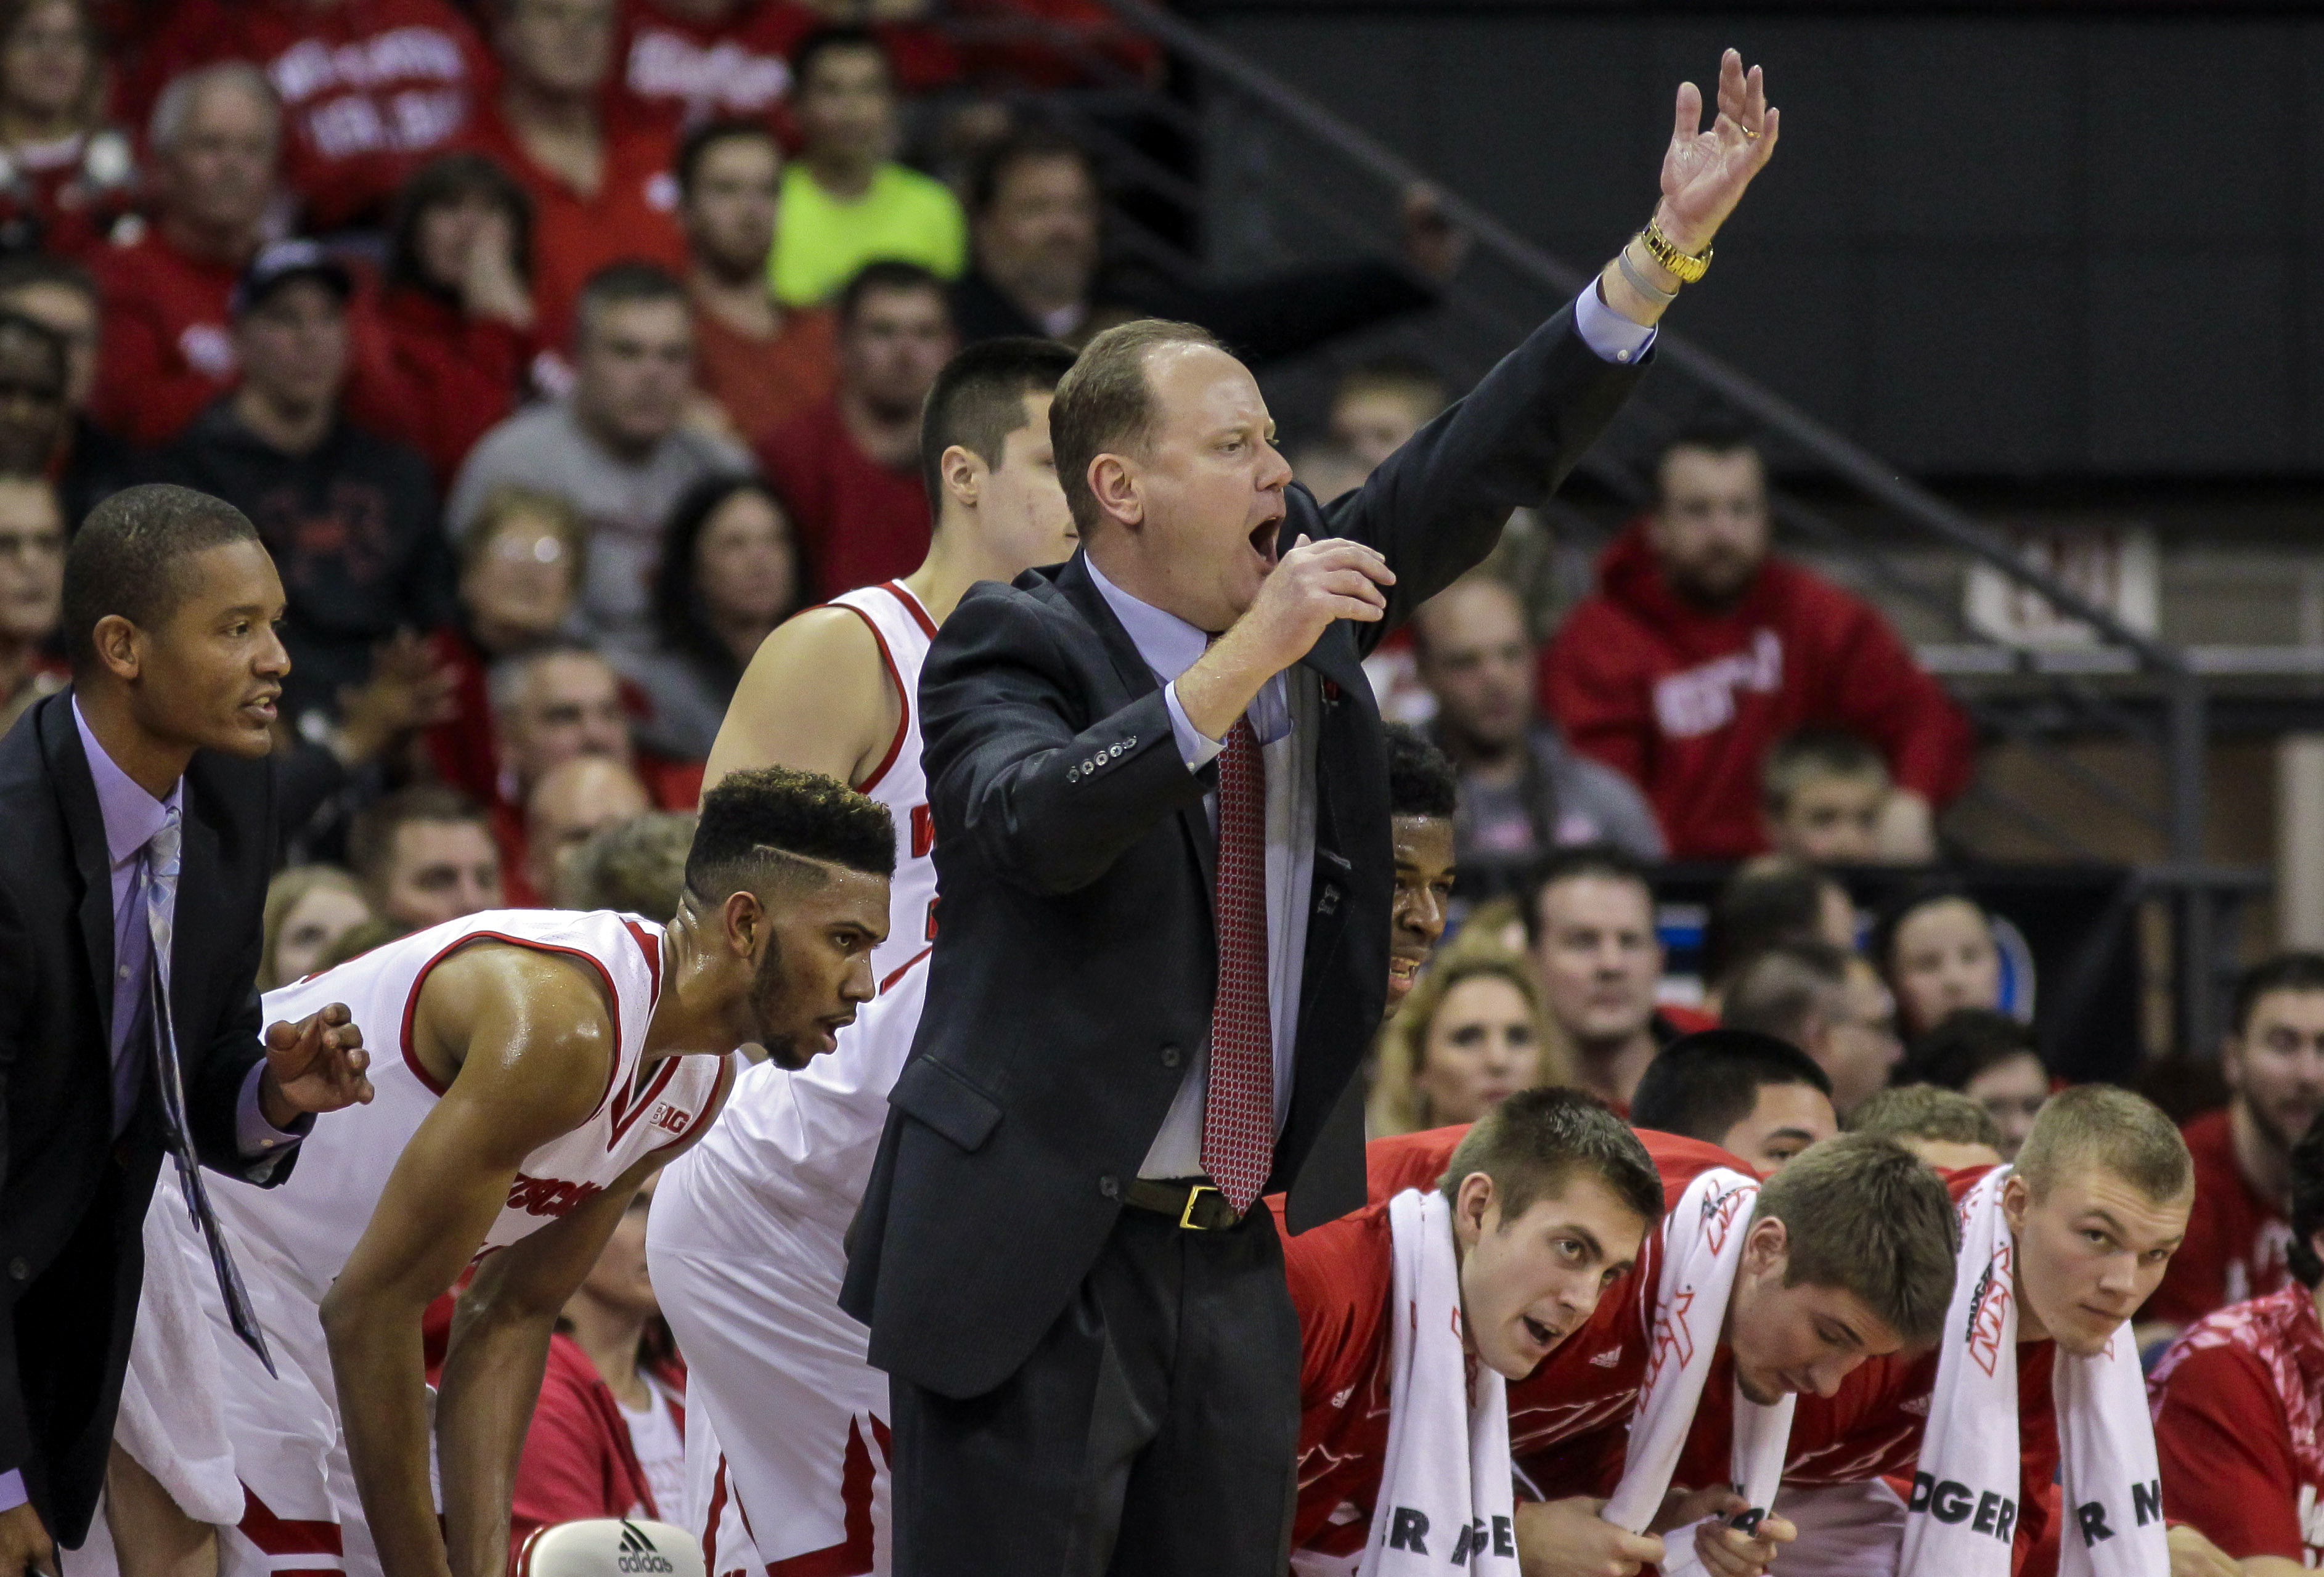 Wisconsin interim head coach Greg Gard yells to his team during the first half of an NCAA college basketball game against Green Bay Wednesday, Dec. 23, 2015, in Madison, Wis. (AP Photo/Andy Manis)